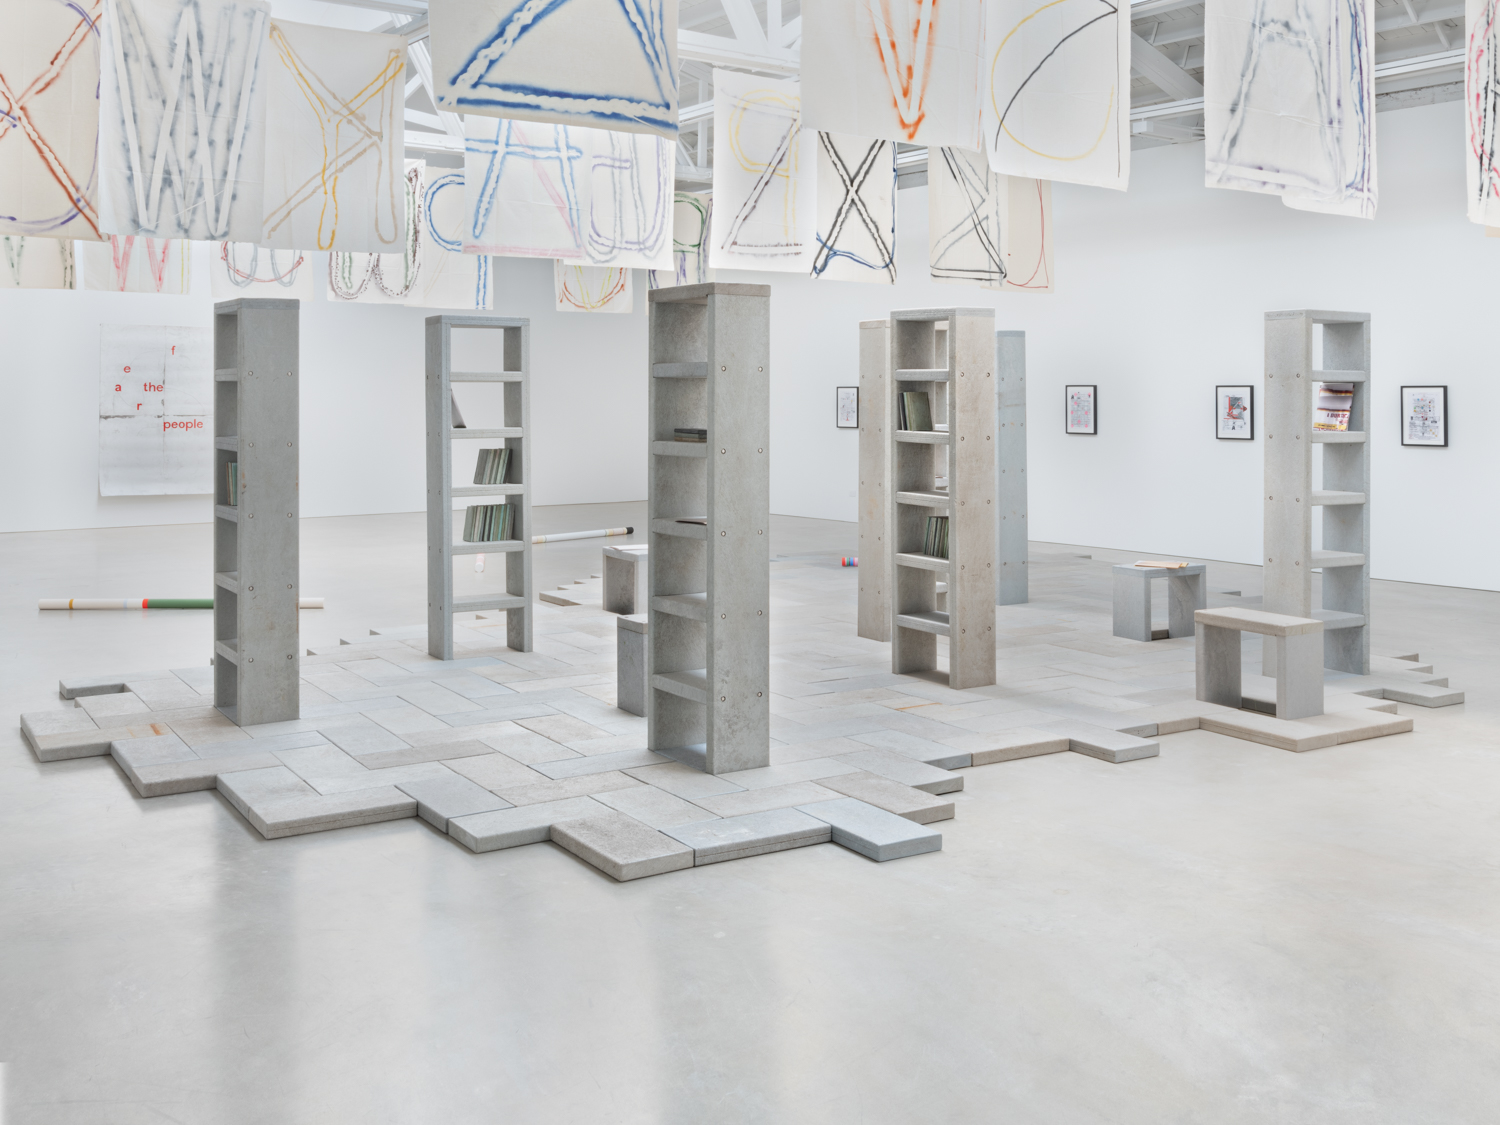 "Dan Peterman  Archive for 57 People  1998 Reprocessed post-consumer plastics, stainless hardware, modular floor, bench and shelf units Shelves - 83 x 23 x 11"" Dimensions variable DPet002"